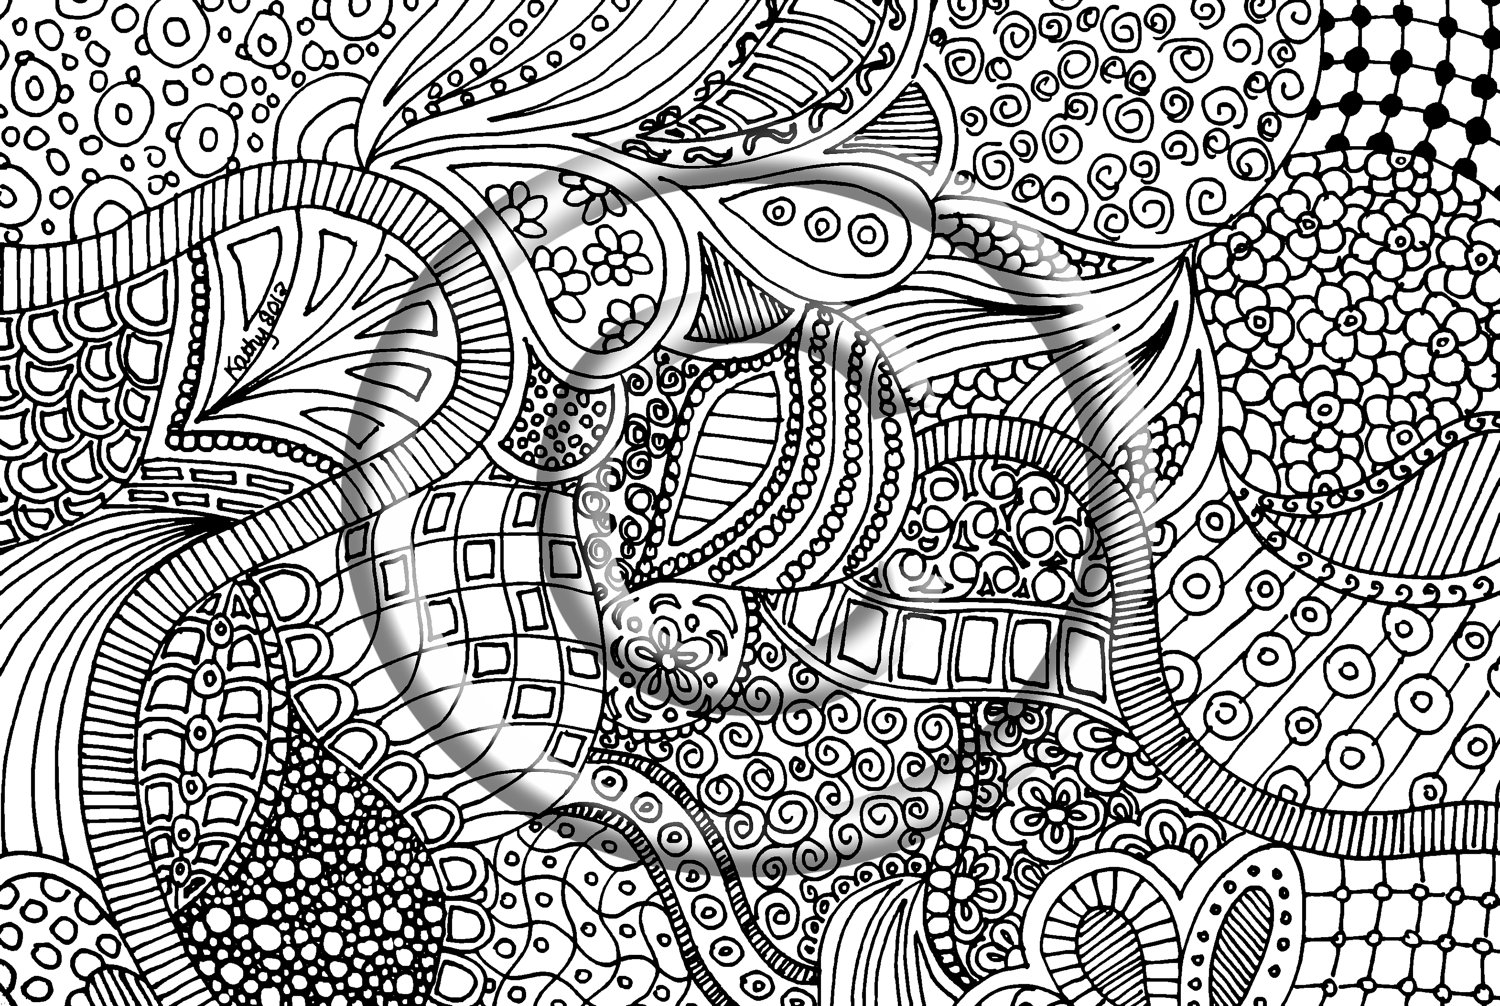 coloring pages zentangle zentangle coloring pages the sun flower pages zentangle coloring pages